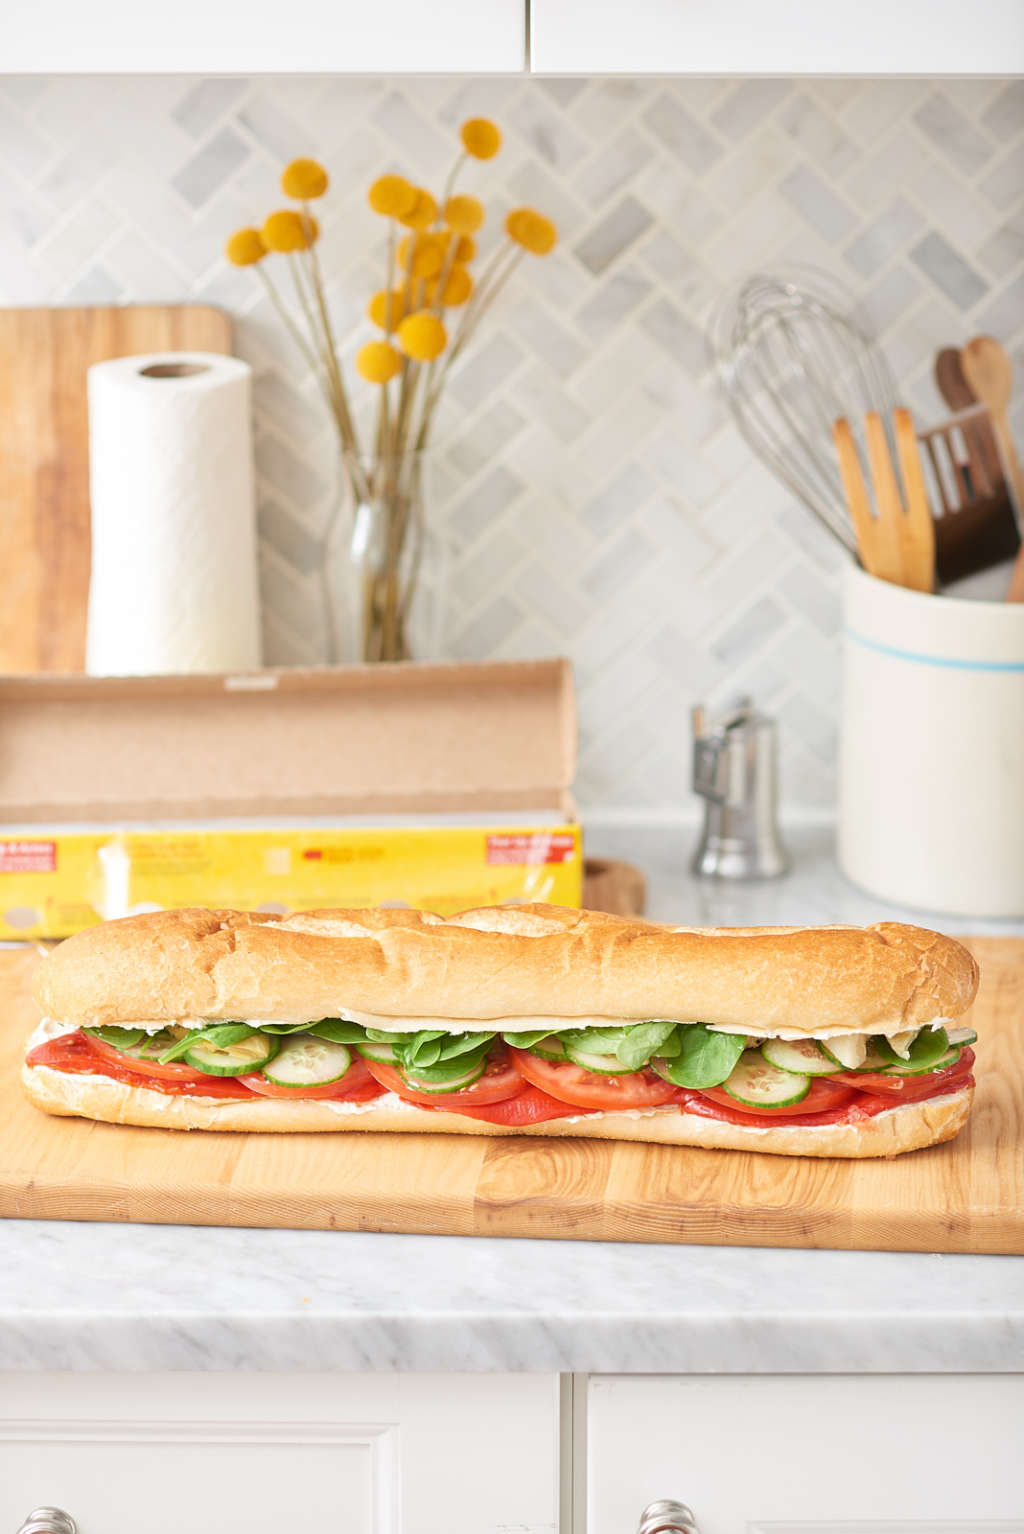 A Hearty Veggie Sandwich That Won't Mess Up the Kitchen